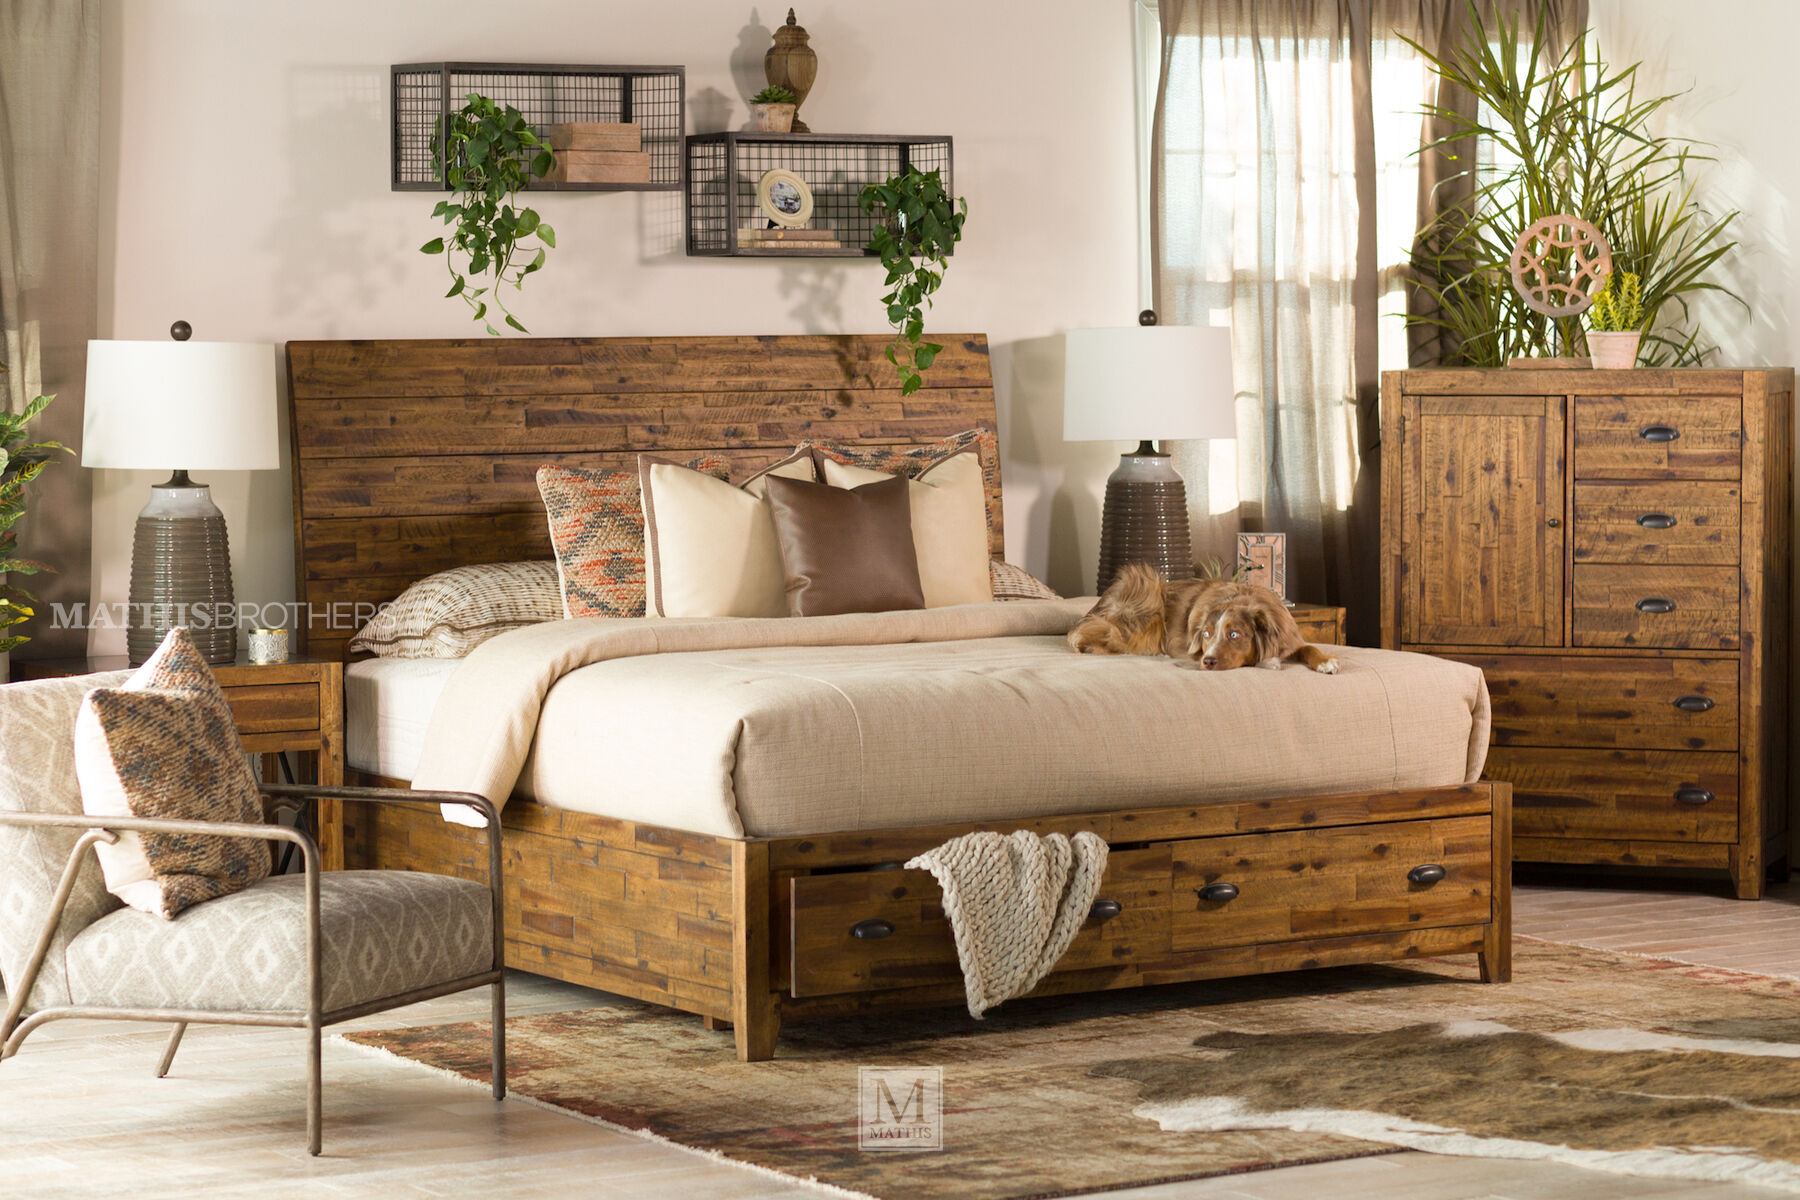 Custom Country Bedroom Sets Concept